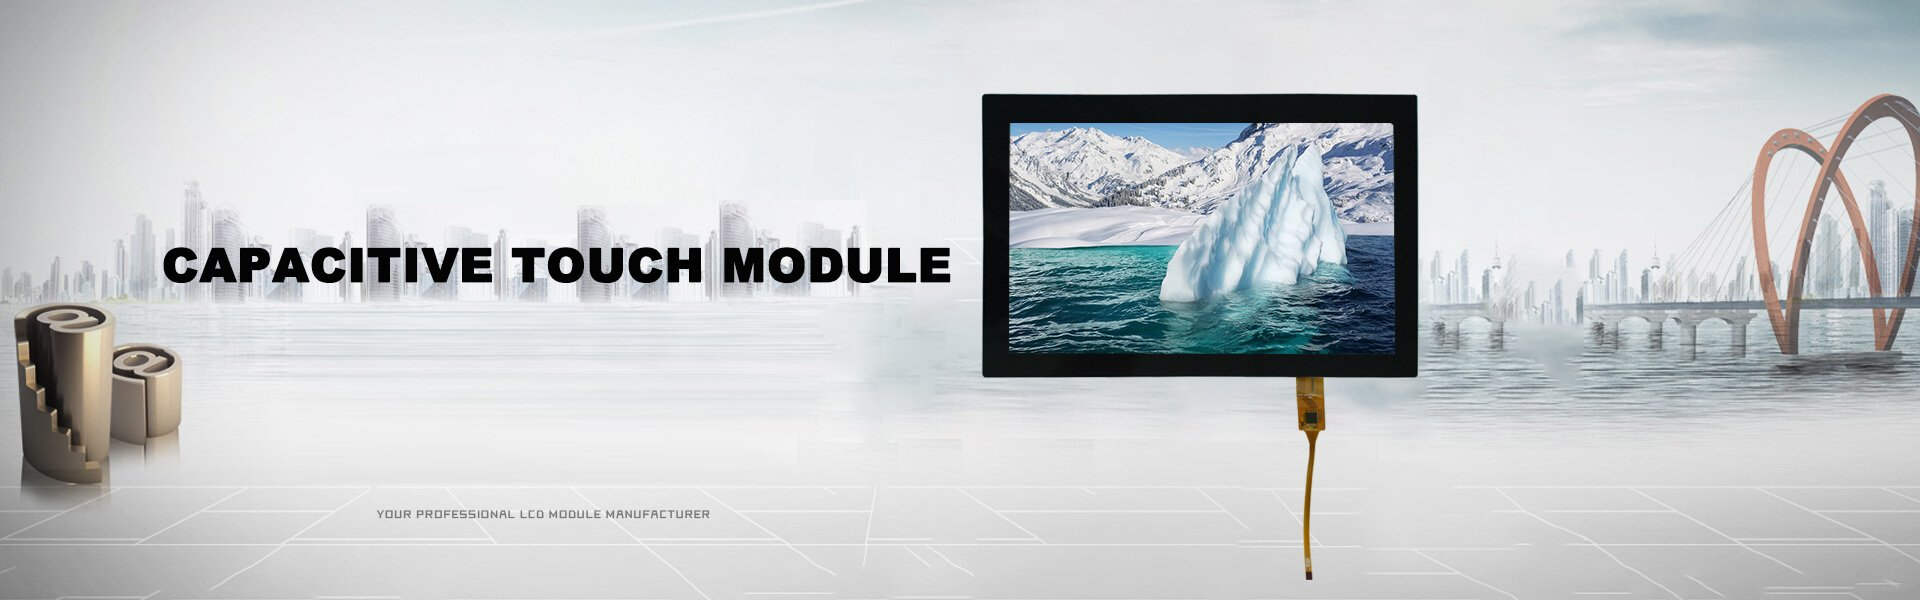 Capacitive Touch Module banner